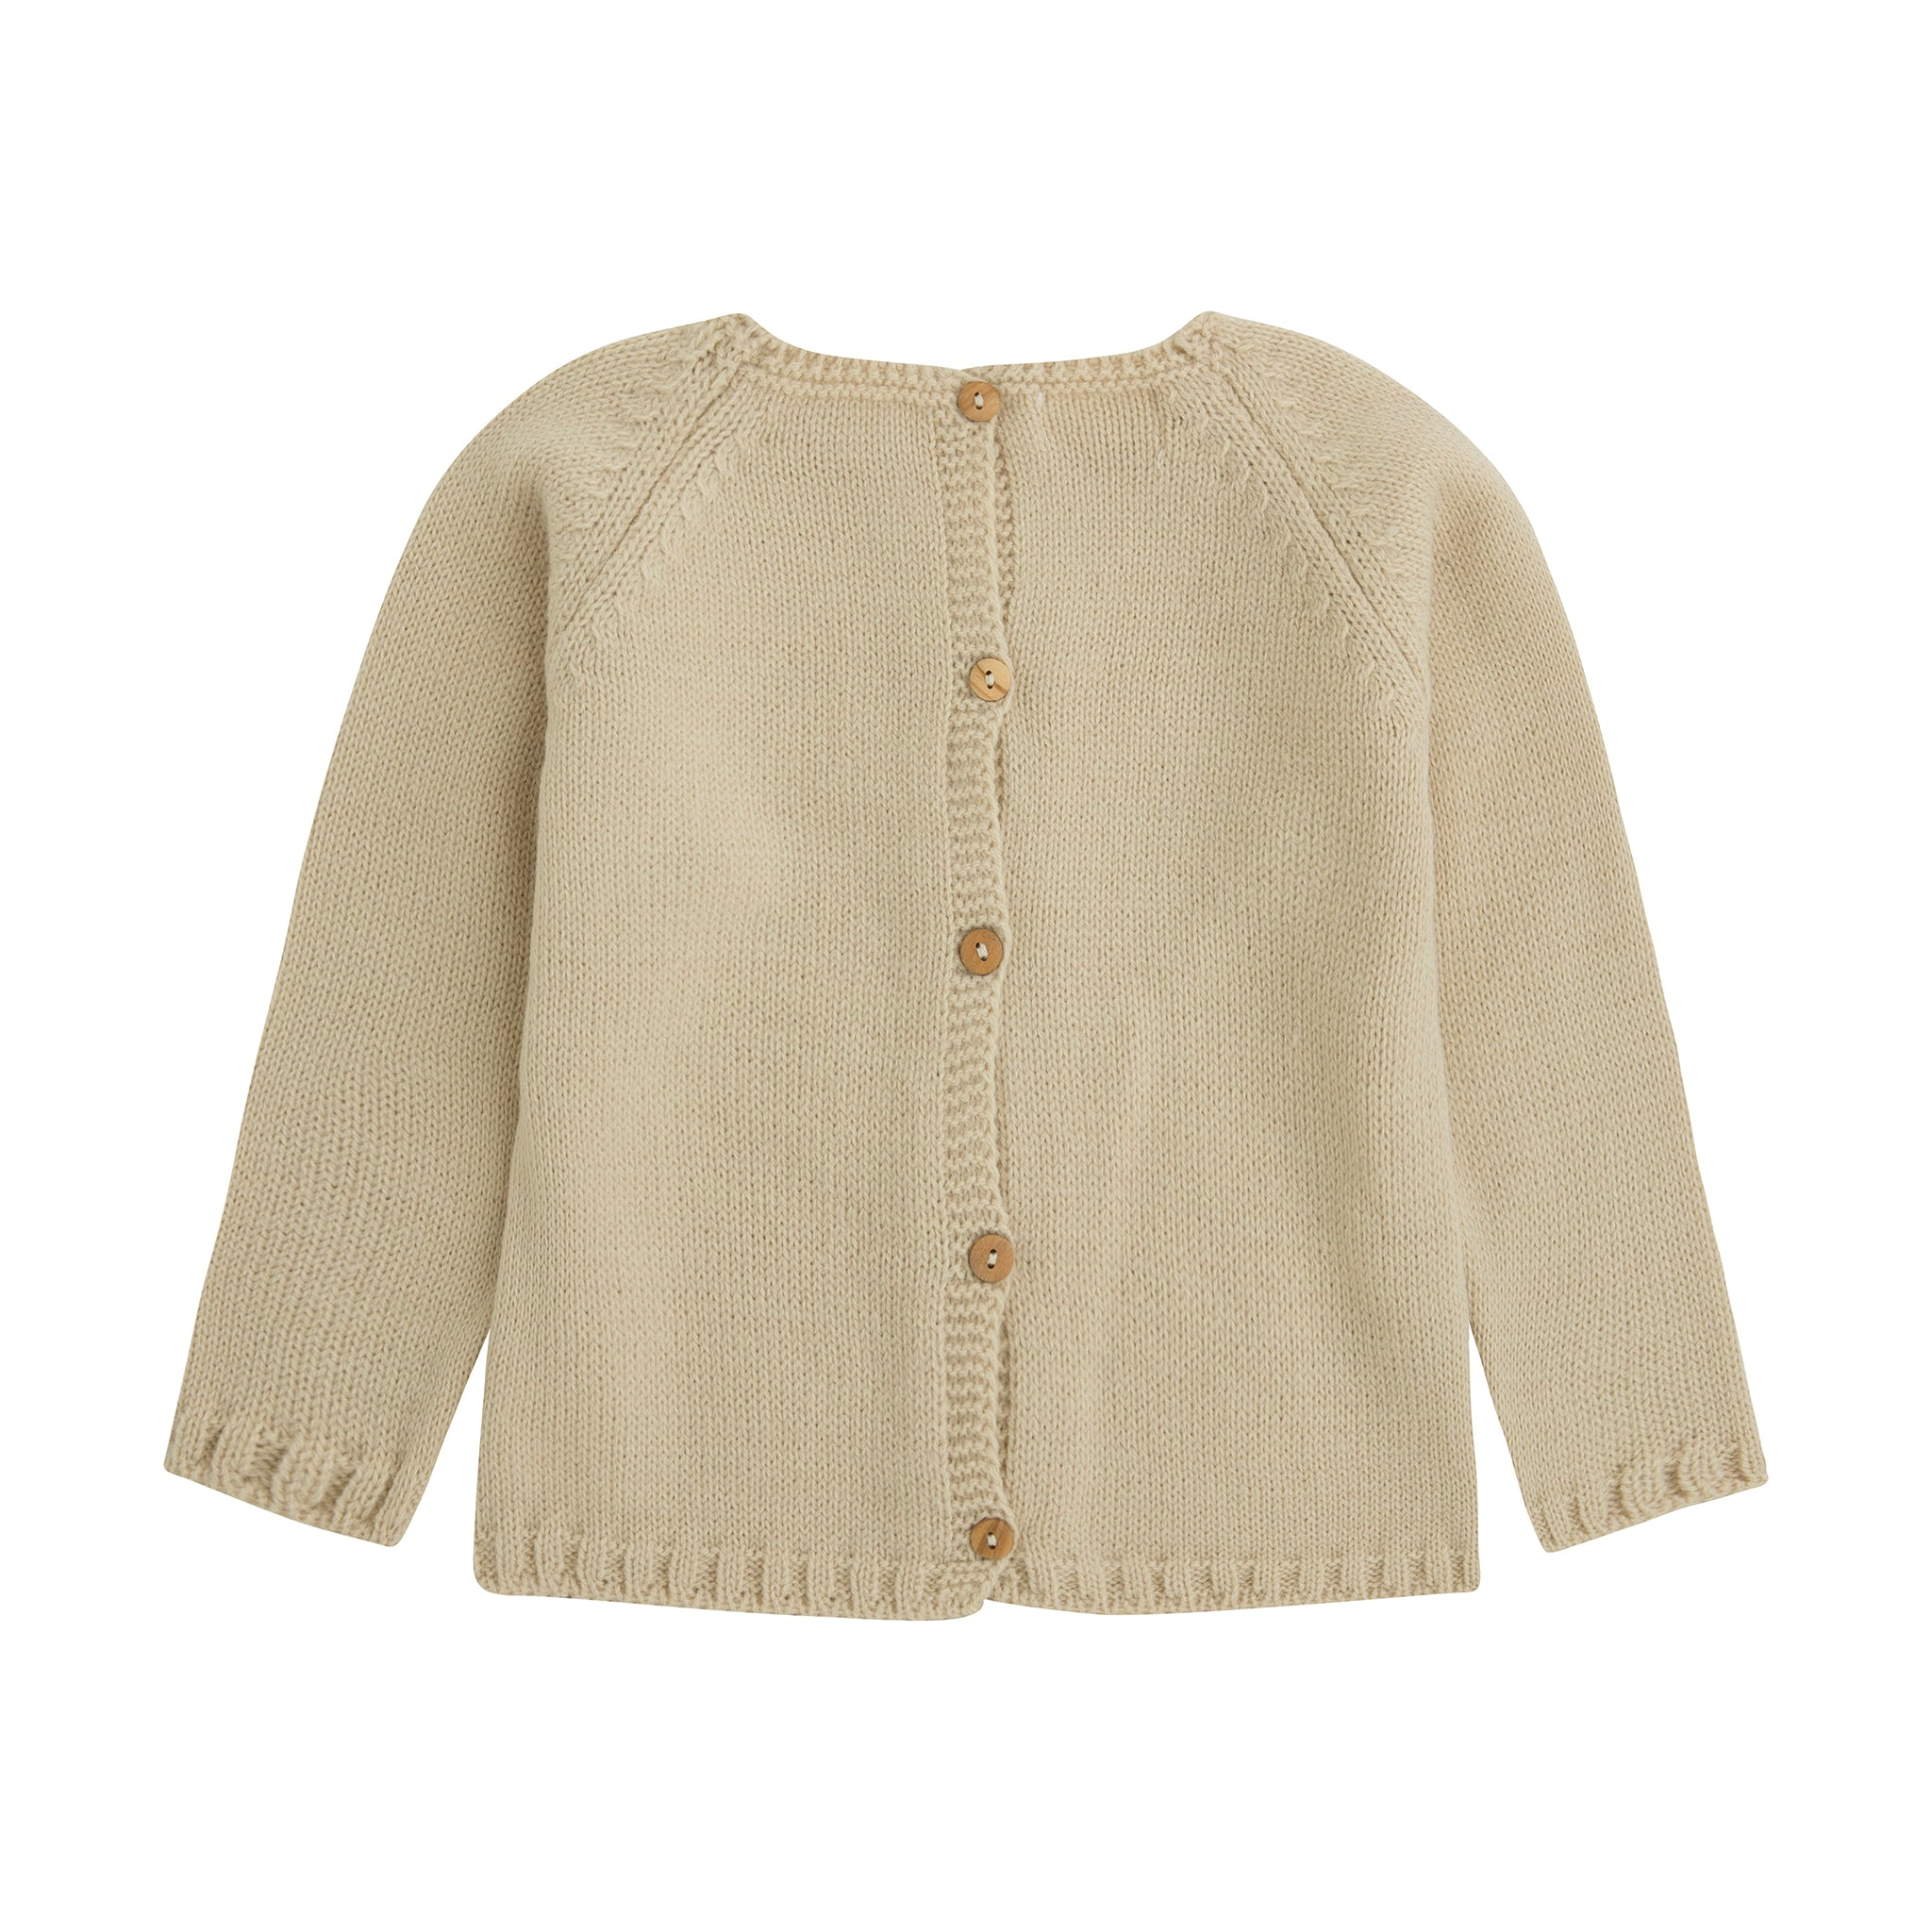 light camel knit baby sweater with wooden buttons down the back